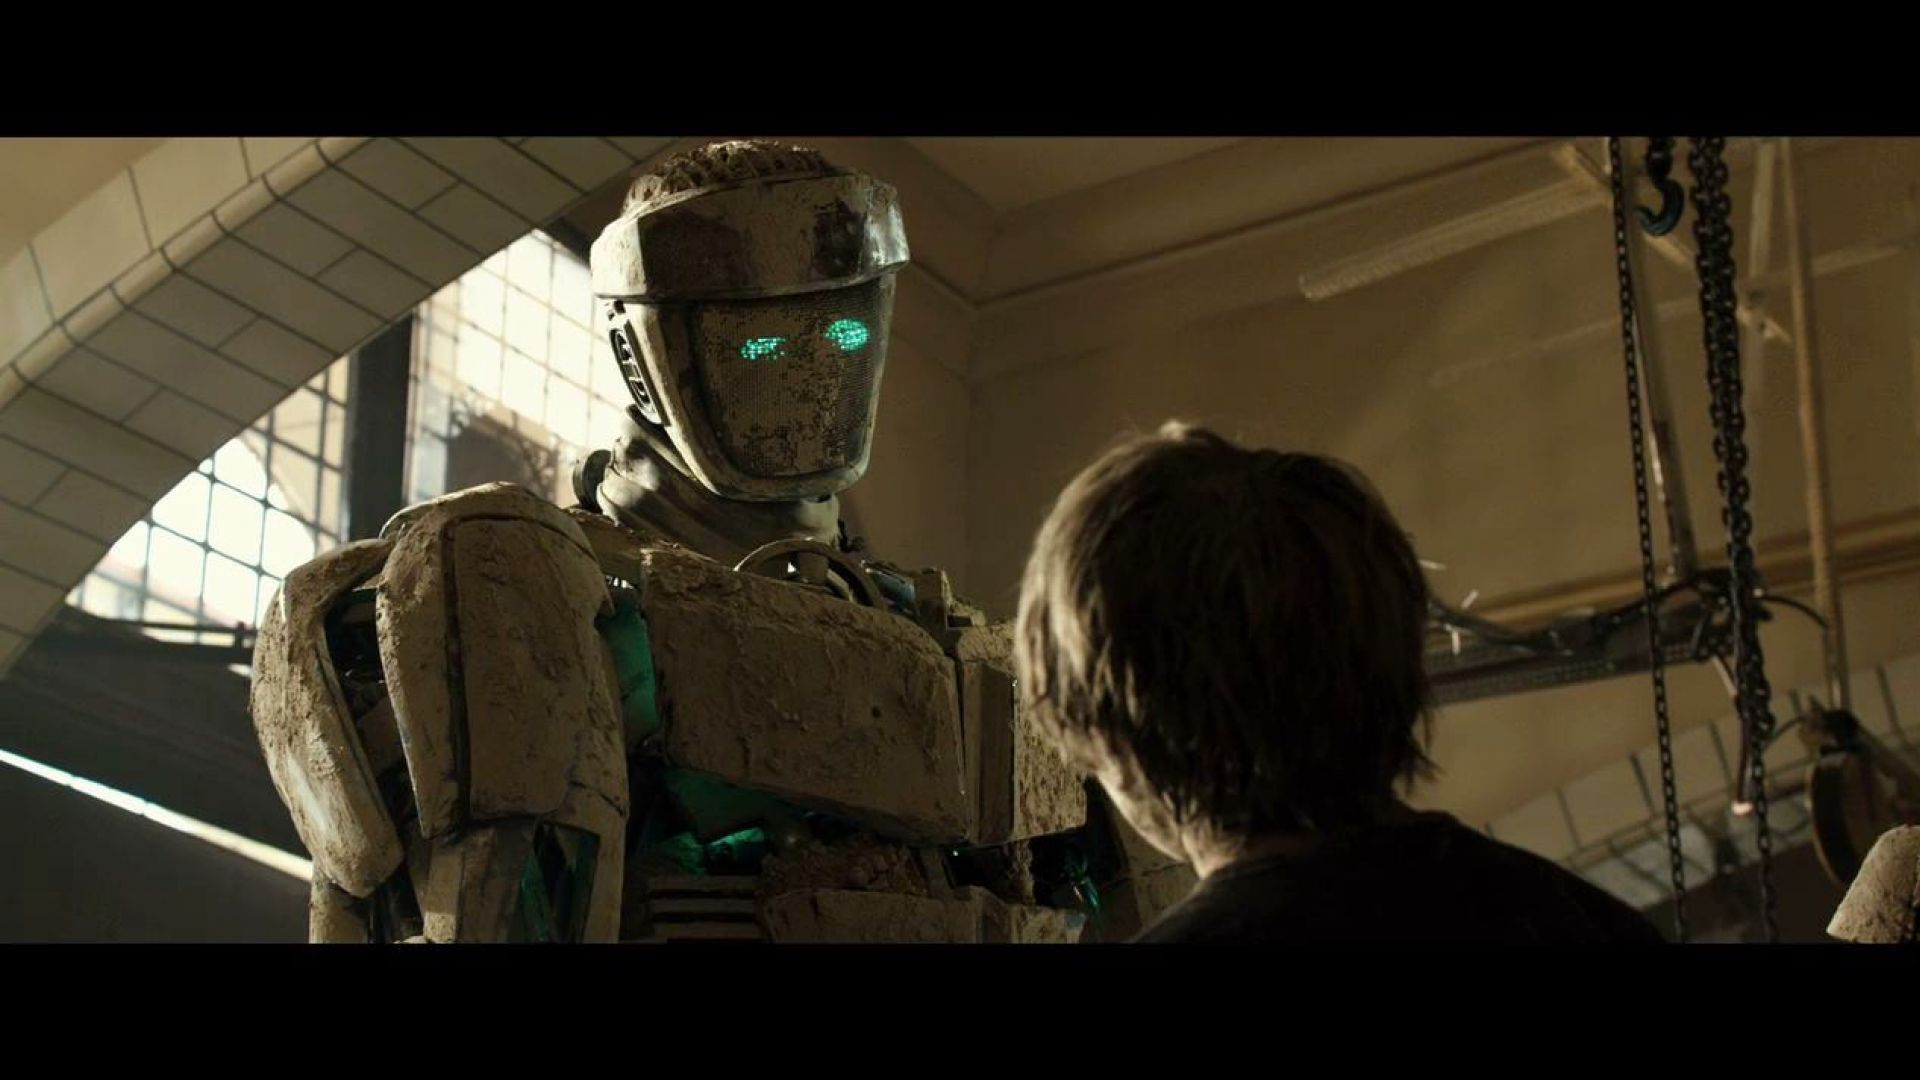 He's a sparring bot. He'll get destroyed in the ring. Real Steel